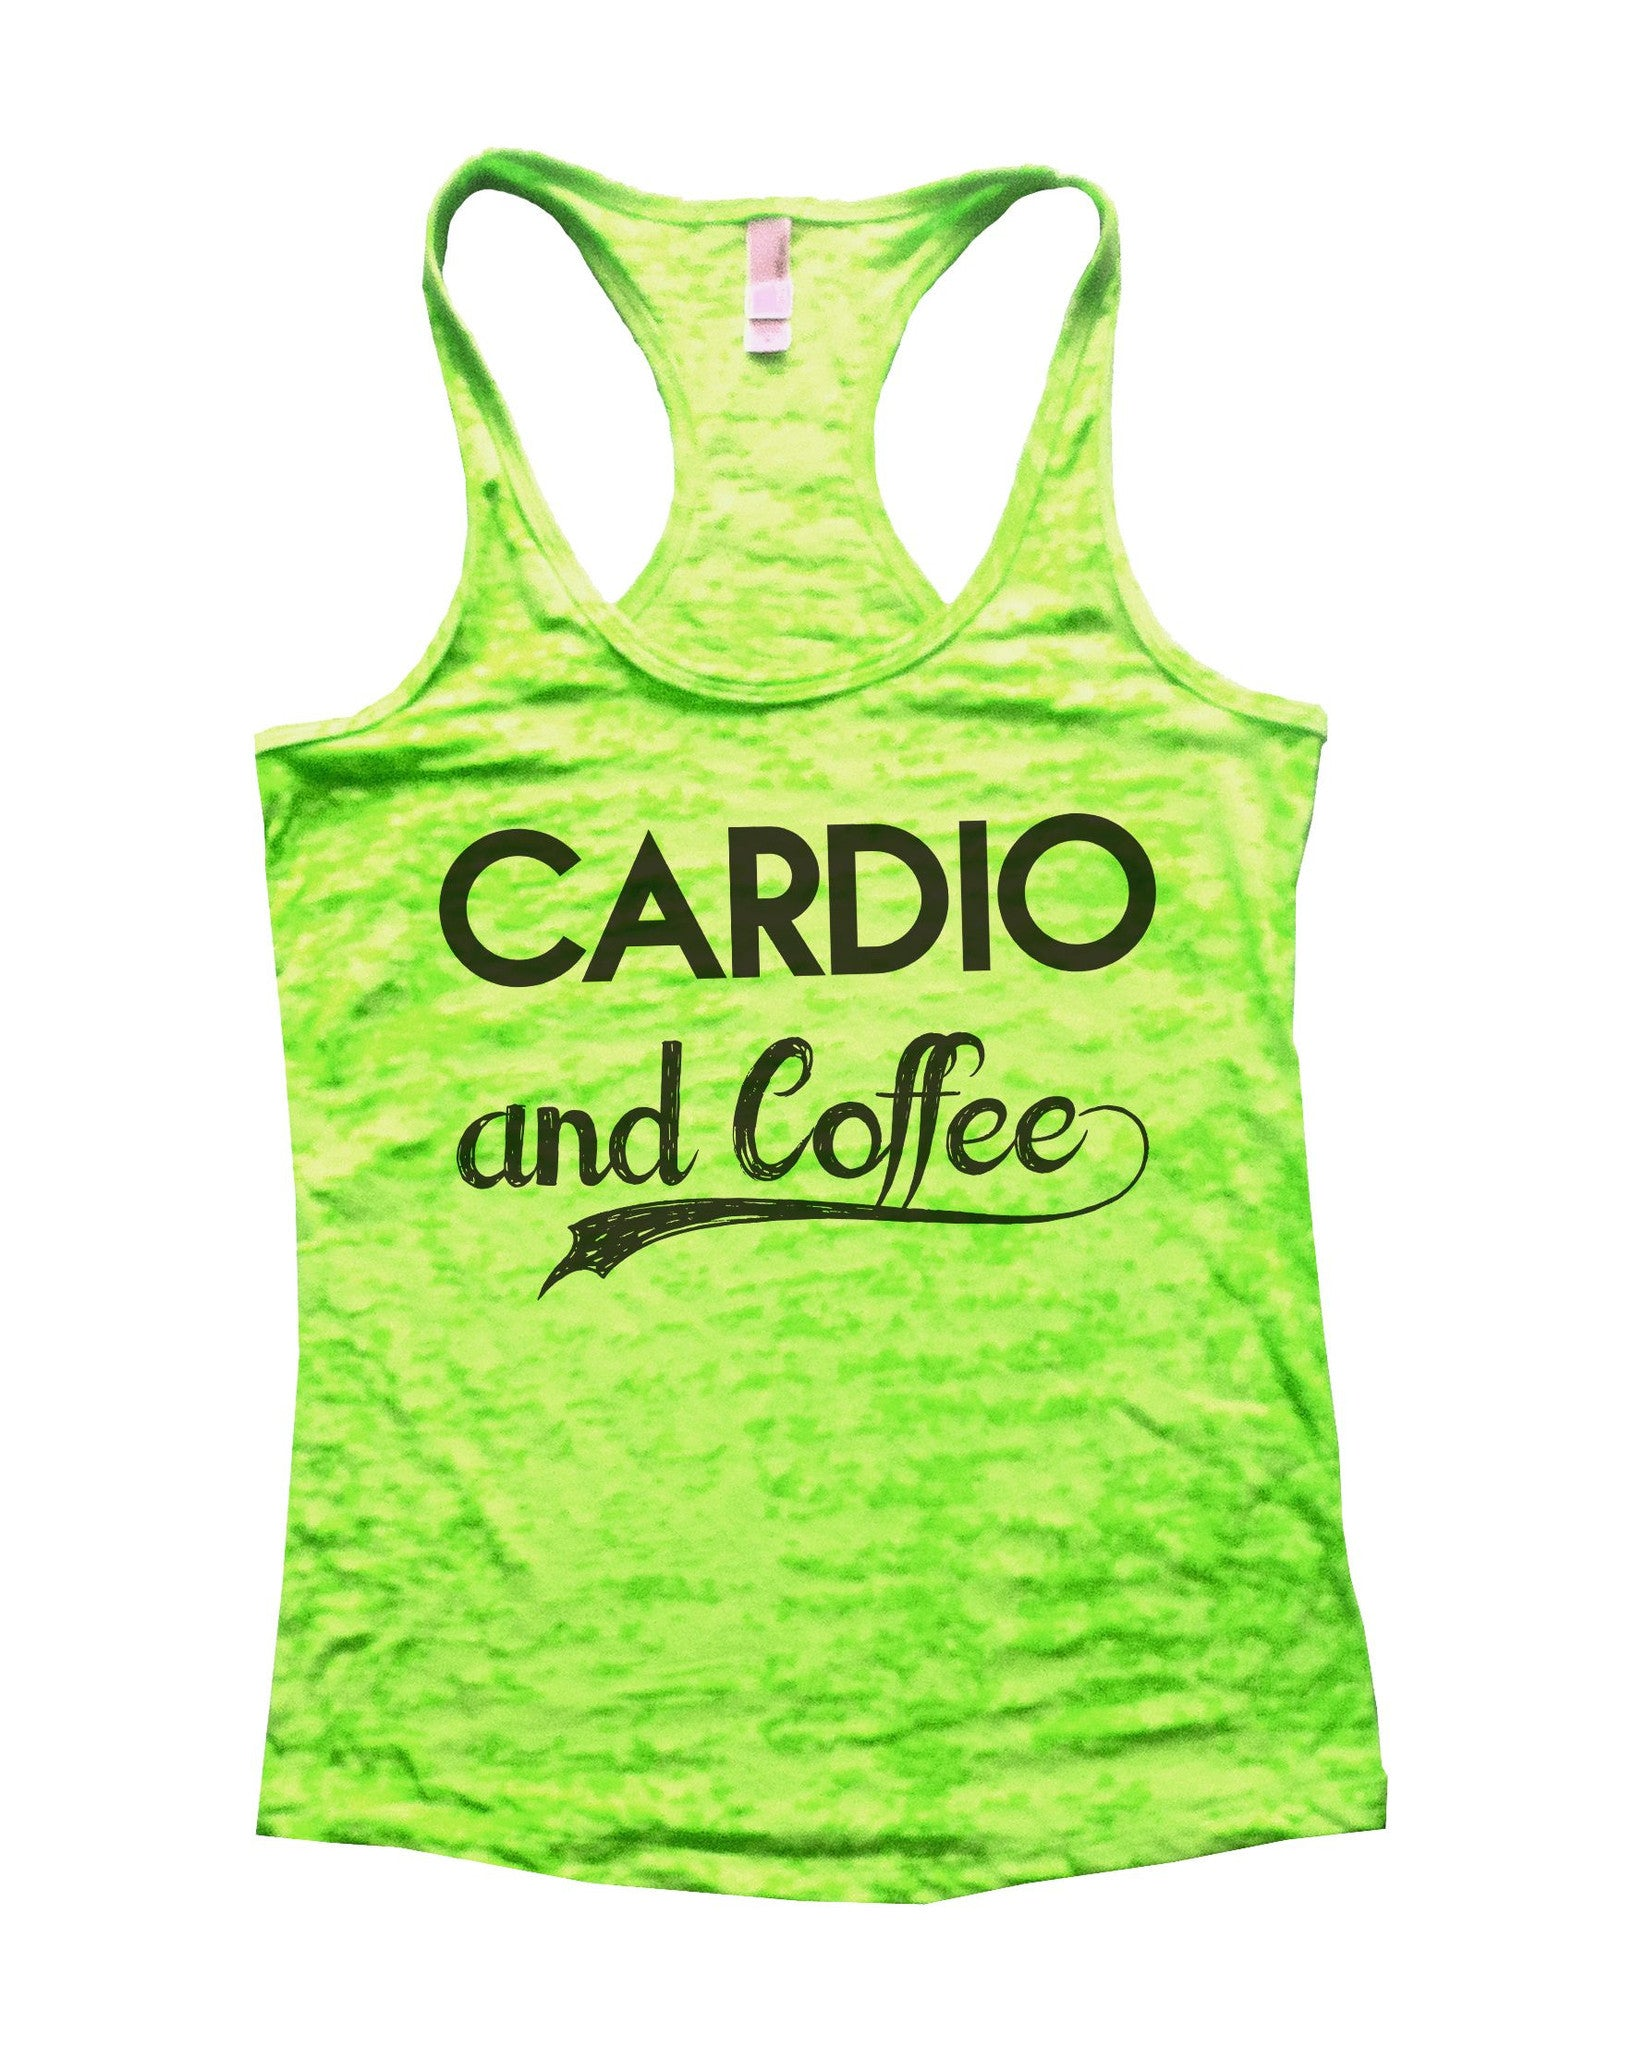 Cardio And Coffee Burnout Tank Top By BurnoutTankTops.com - 797 - Funny Shirts Tank Tops Burnouts and Triblends  - 2